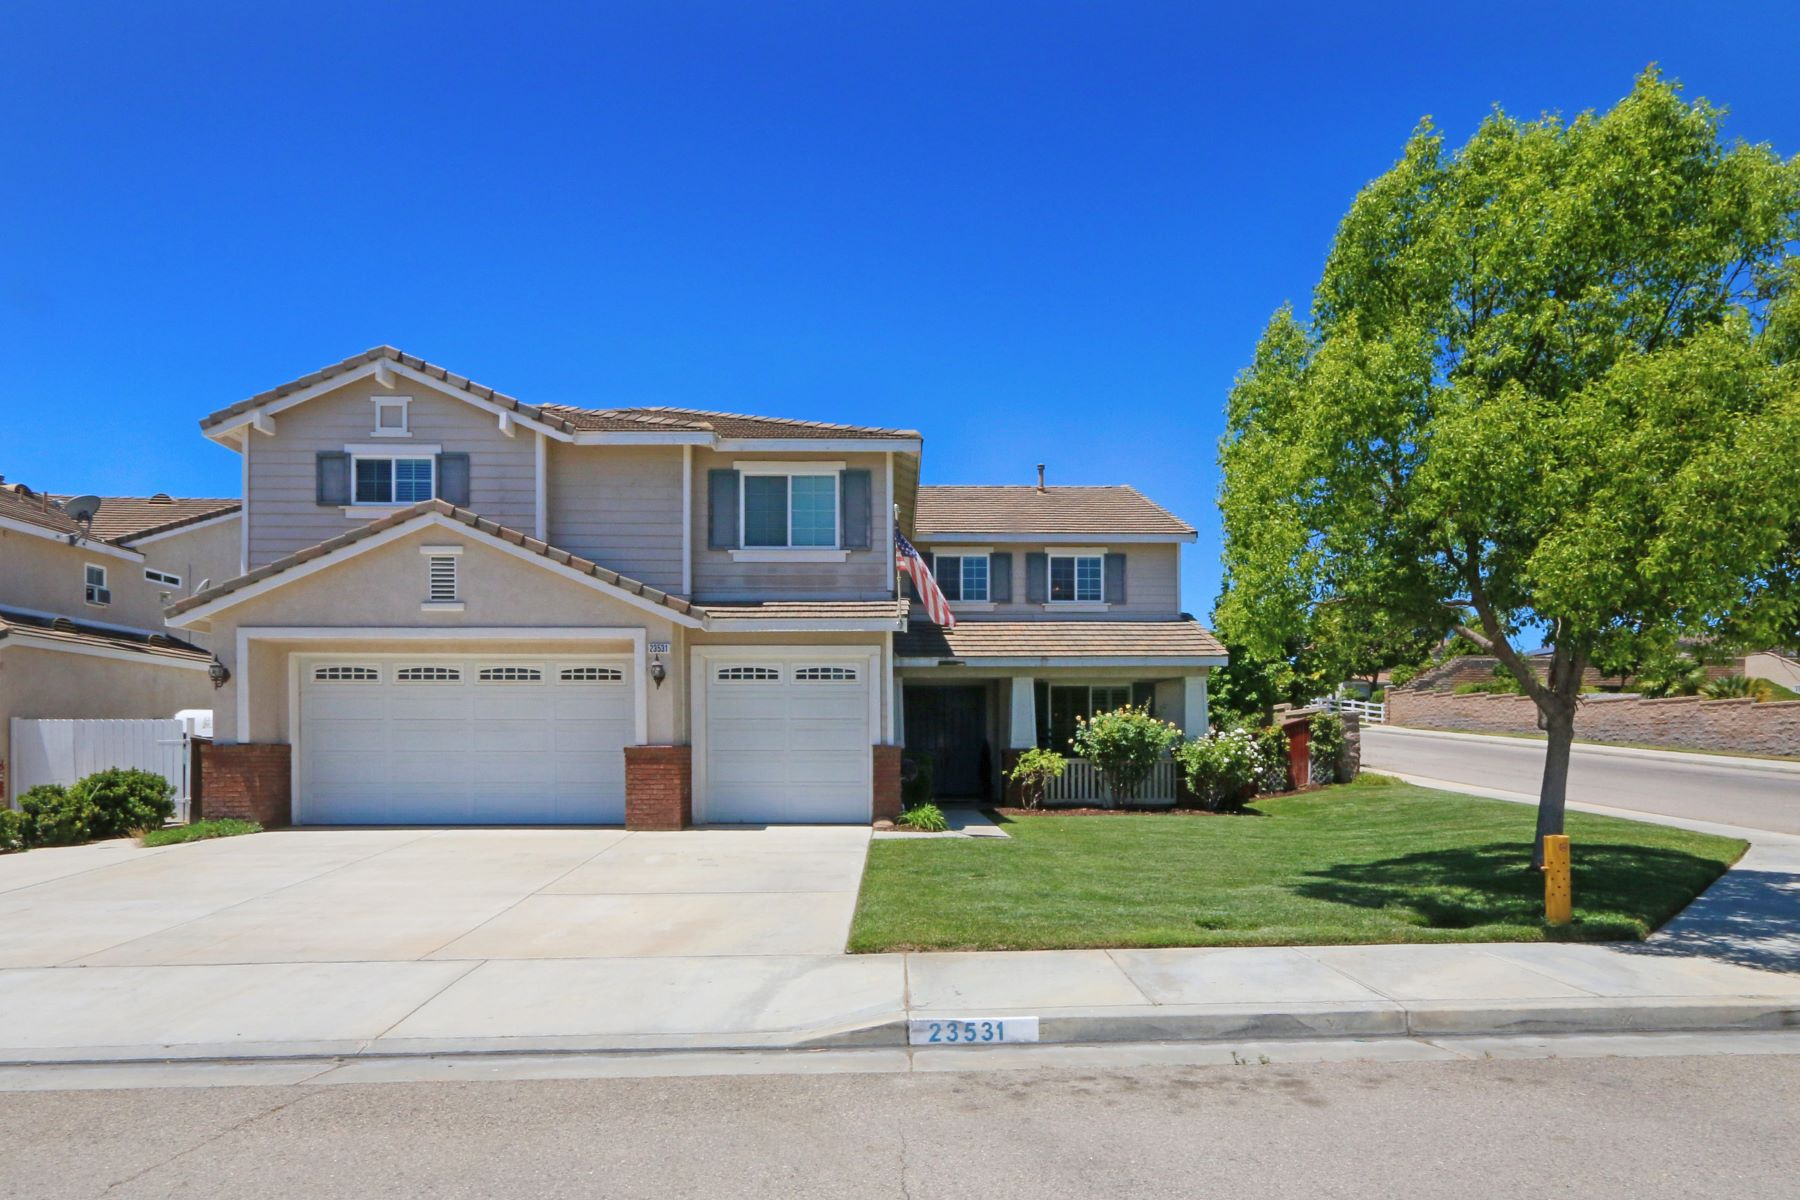 Single Family Homes for Sale at Sycamore Ranch 23531 Karen Place Murrieta, California 92562 United States